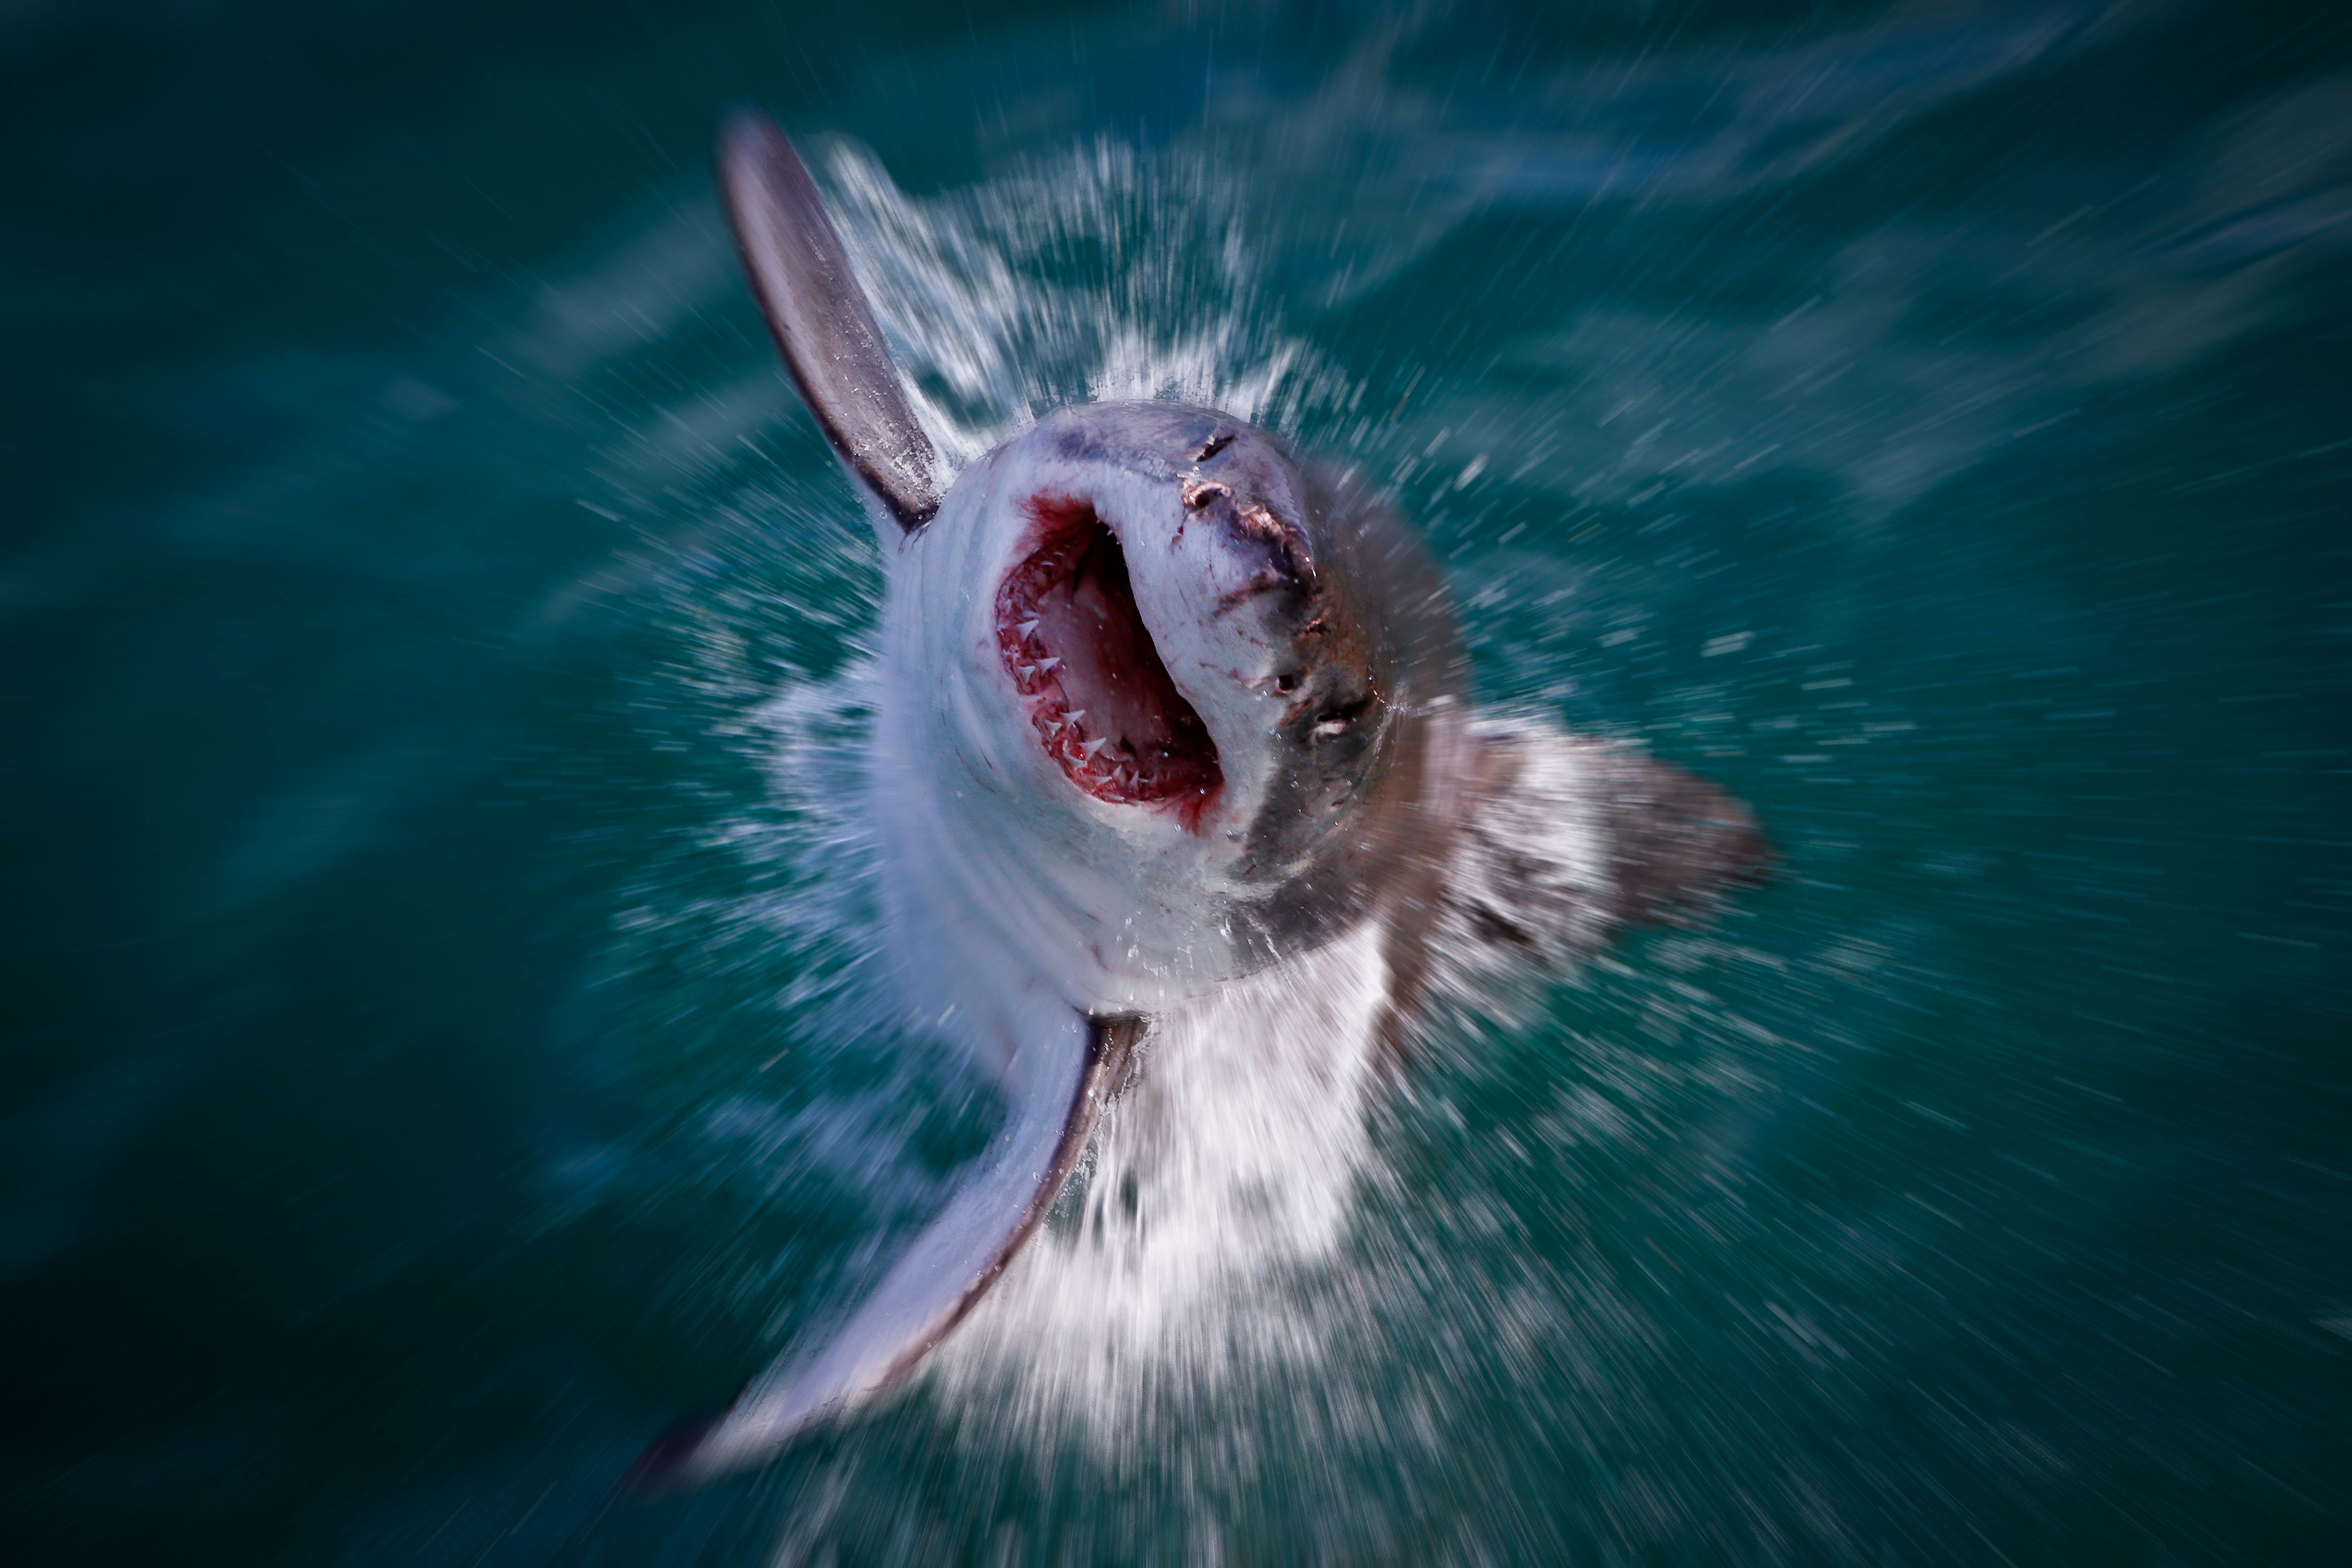 The great white shark rises out of the waves towards the camera